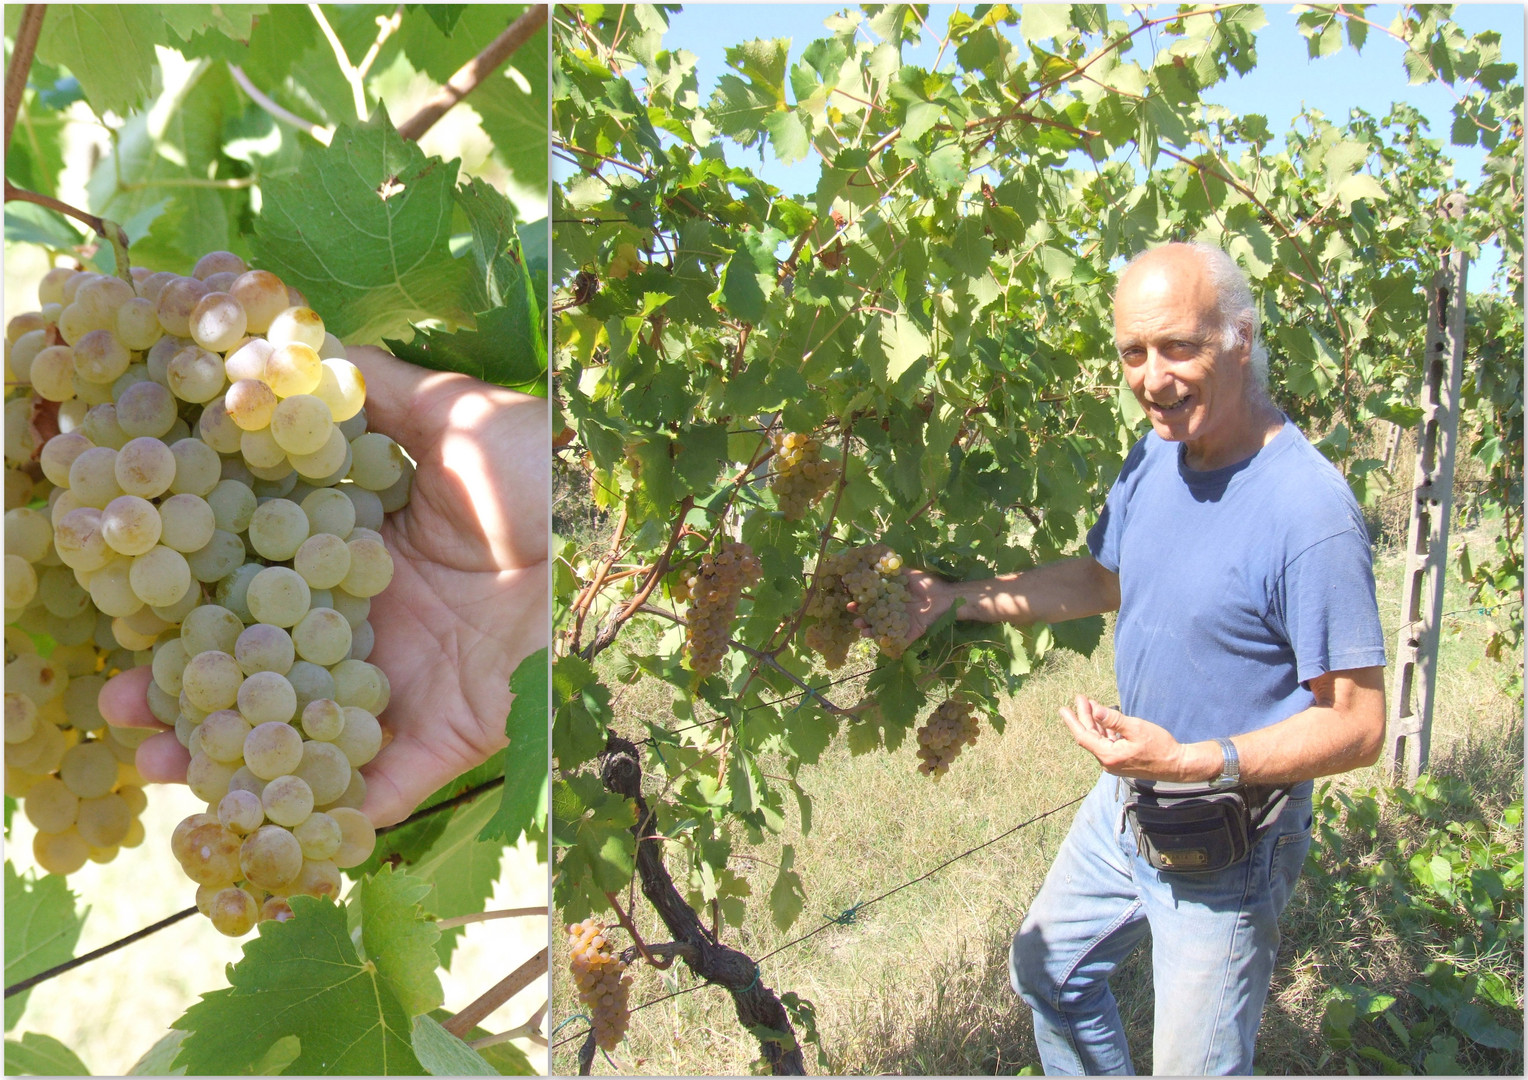 5-1 Paolo selecting grapes collage.JPG